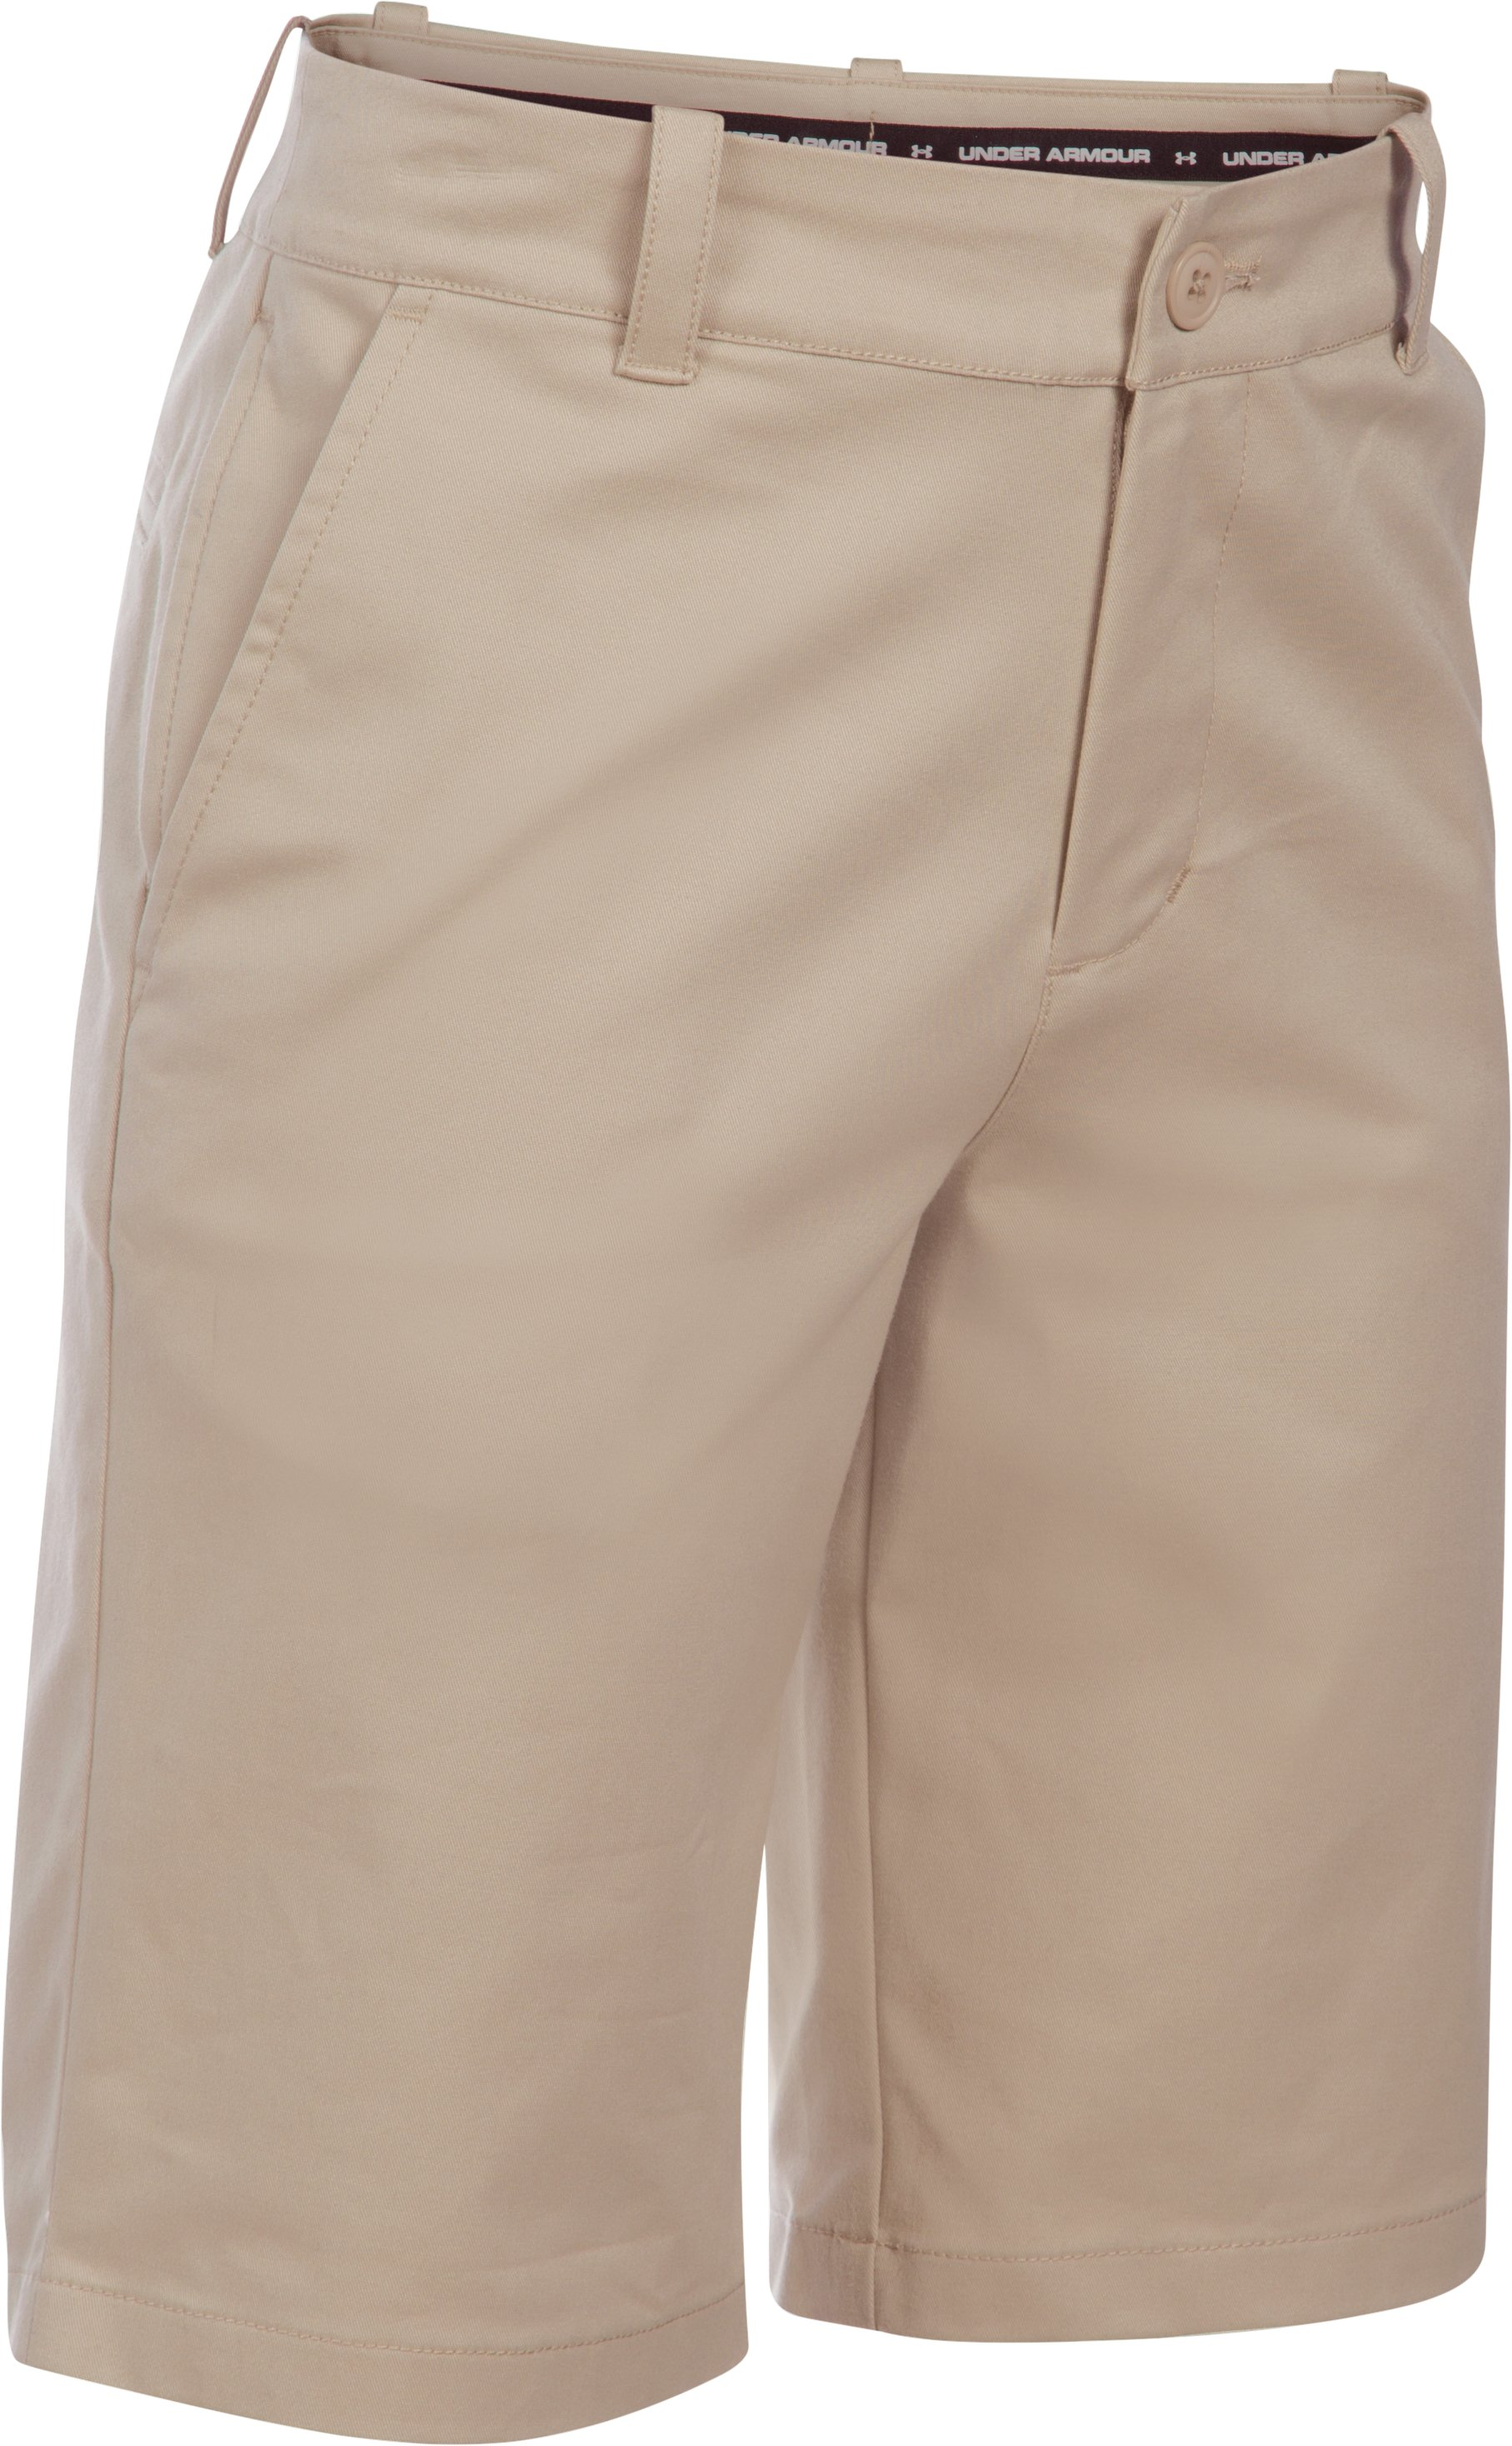 Boys' UA Uniform Chino Shorts – Husky, Desert Sand